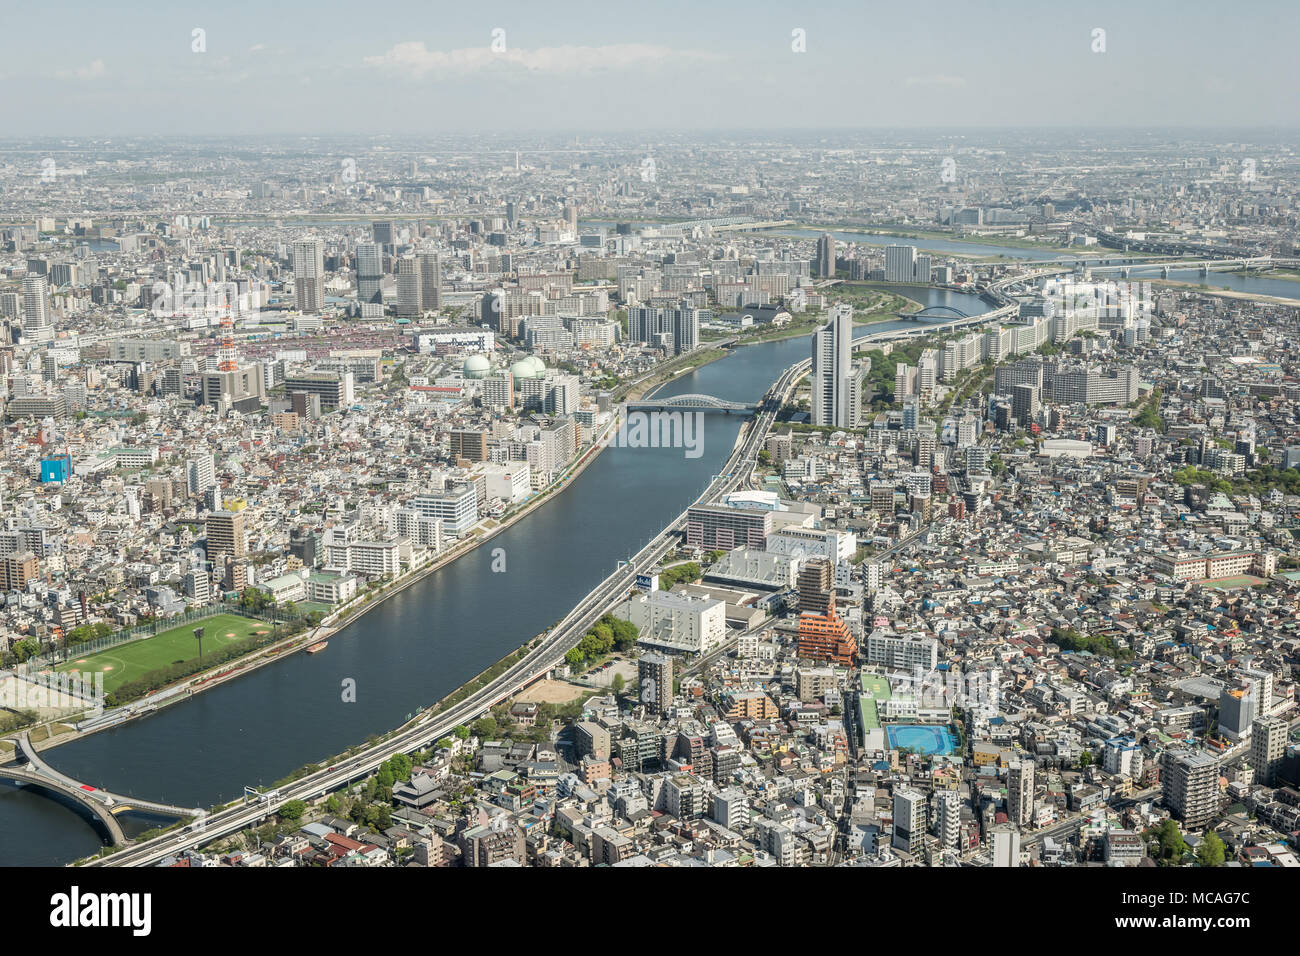 Panoramic View of Tokyo City from the Top of Tokyo Skytree - Stock Image